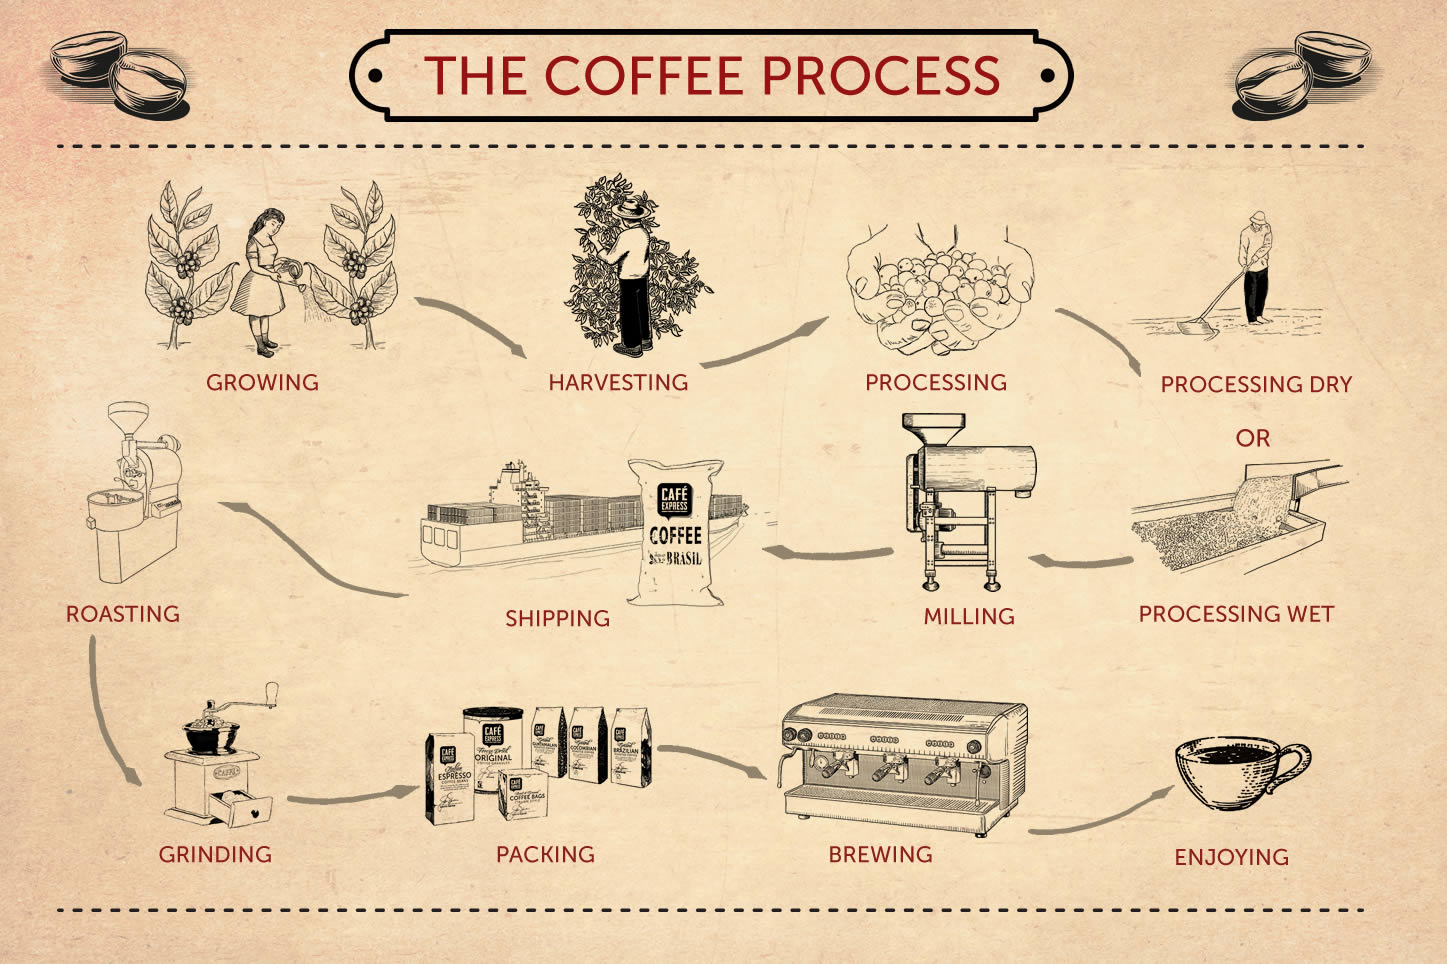 The Coffe Process